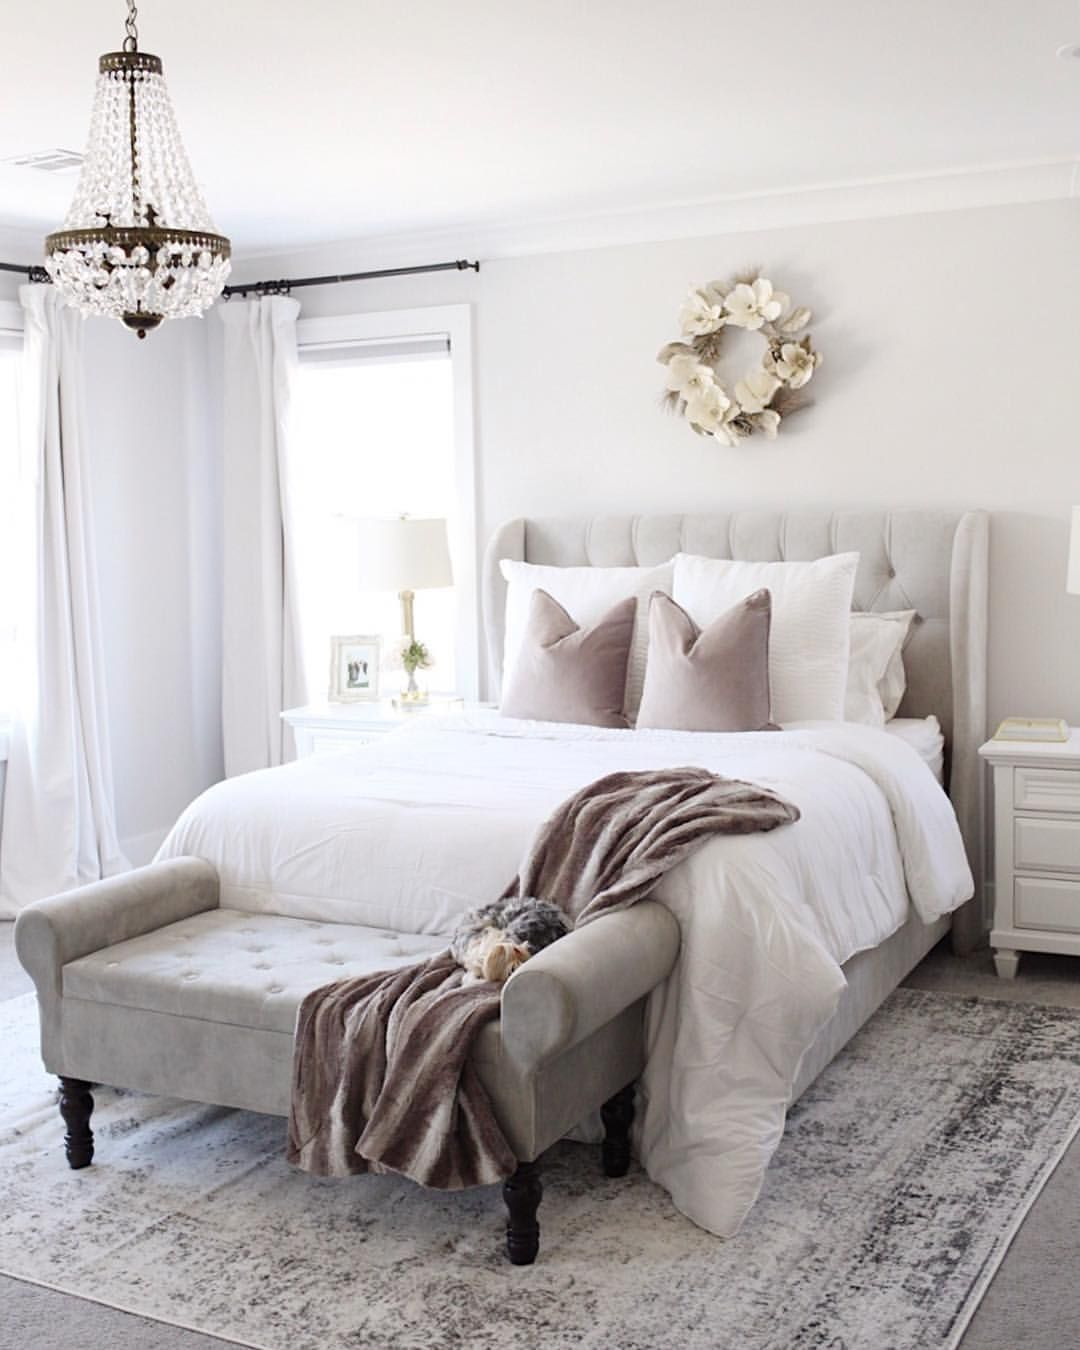 10 Best Bedroom Decor Ideas | Insplosion